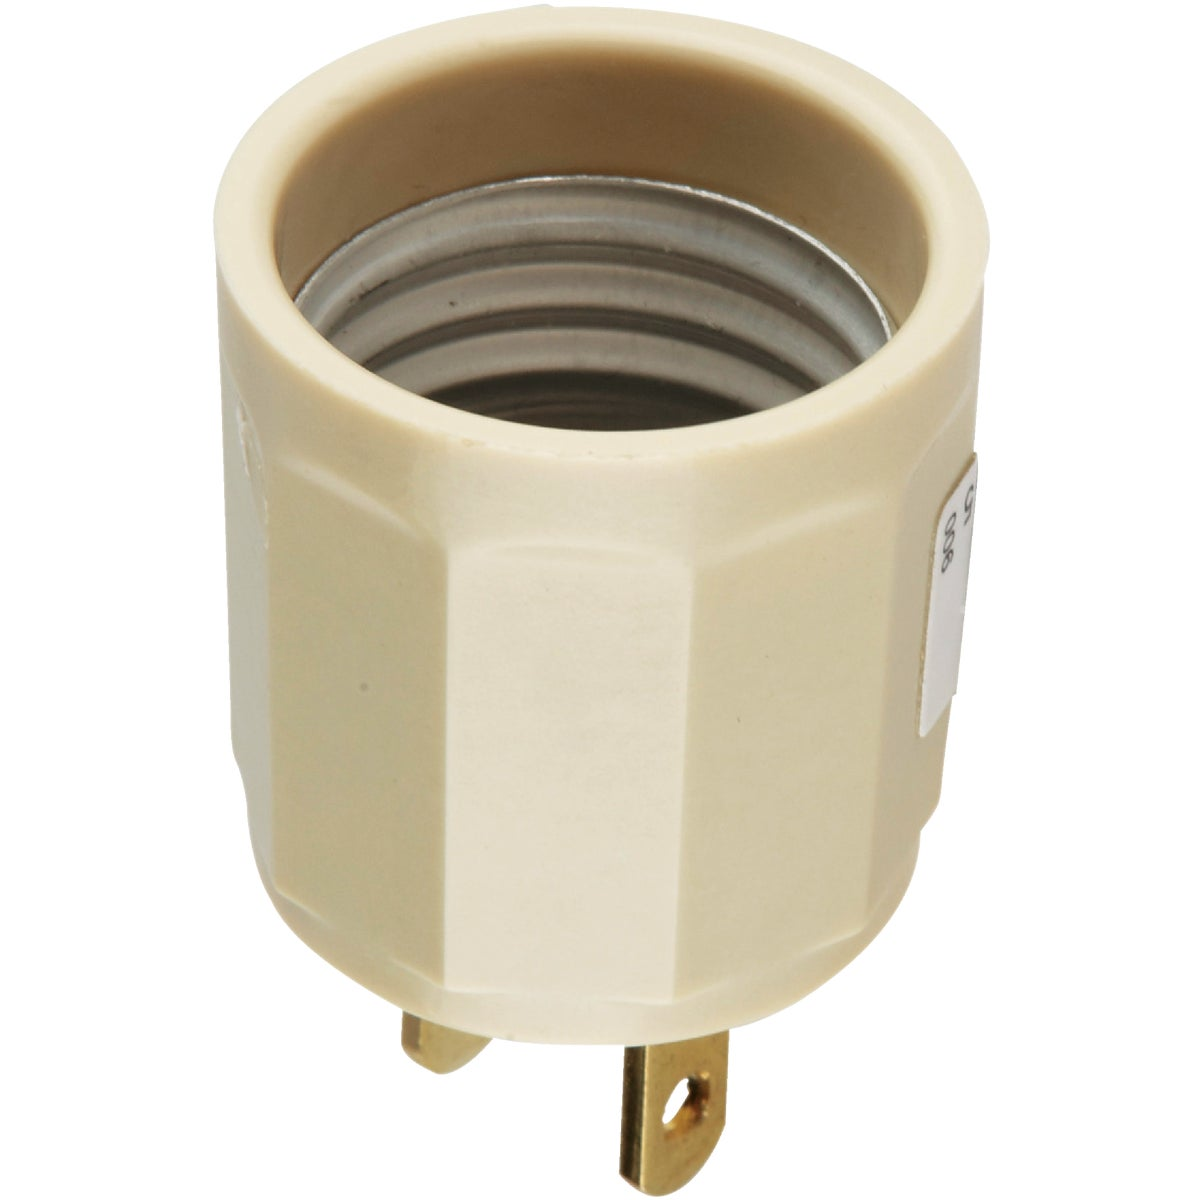 OUTLT/LAMPHOLDER ADAPTER